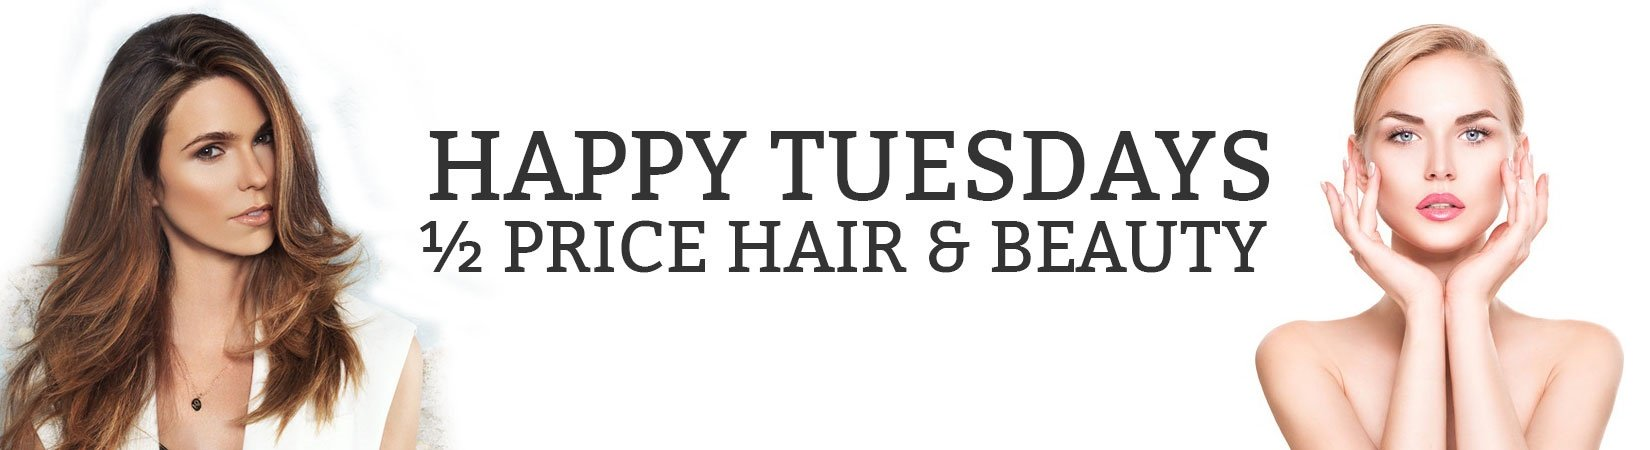 Happy Tuesdays! 50% OFF